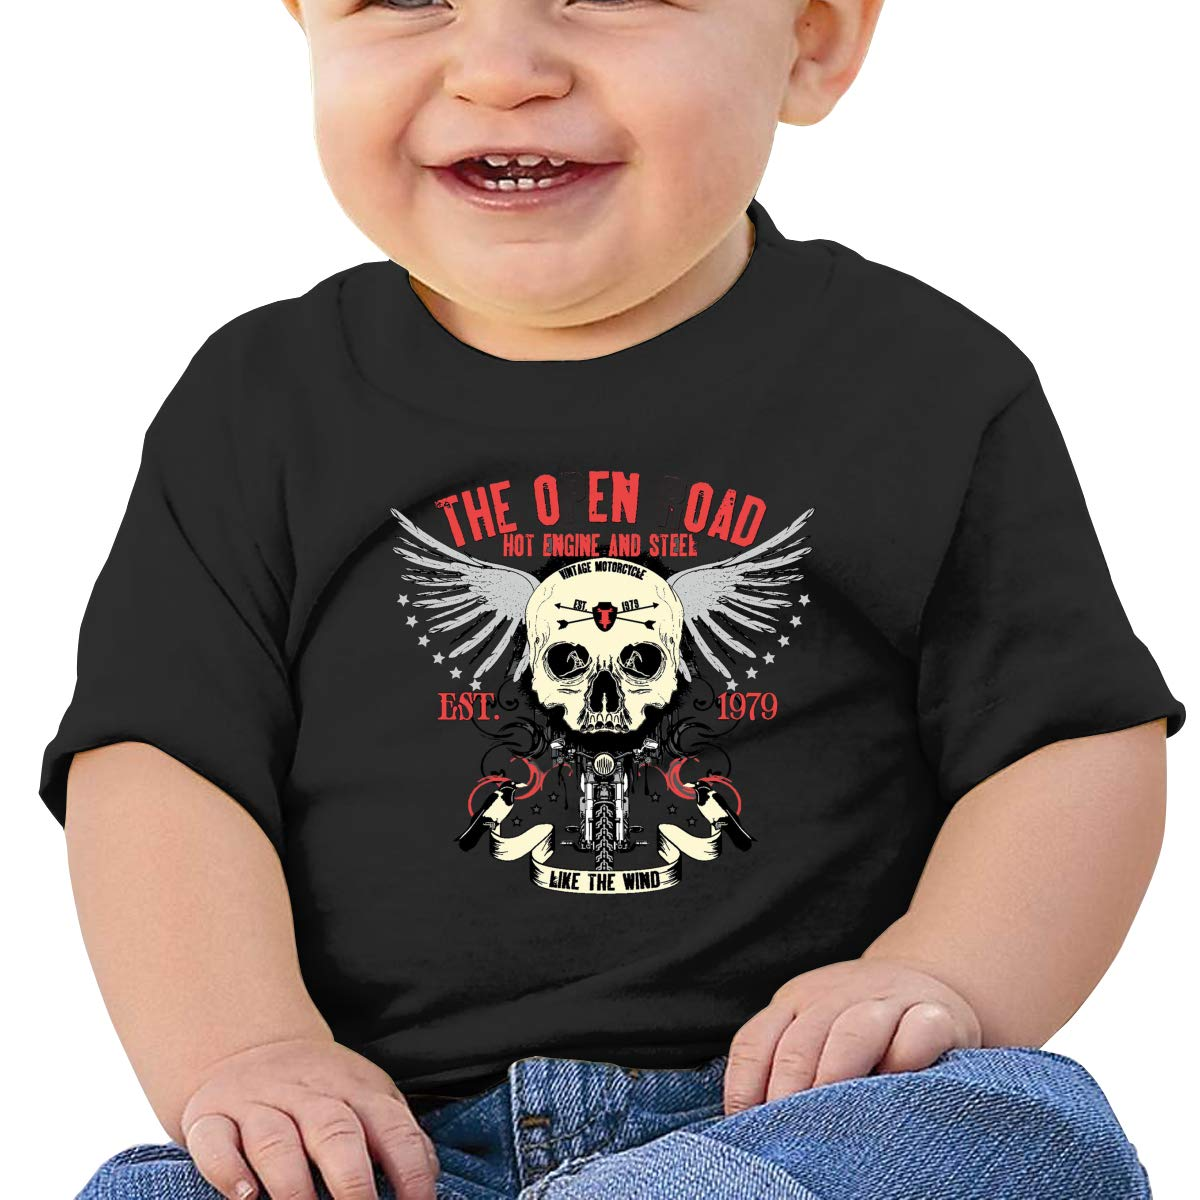 Hazhisha The Open Road Baby T-Shirt with Round Collar and Pure Cottonblack